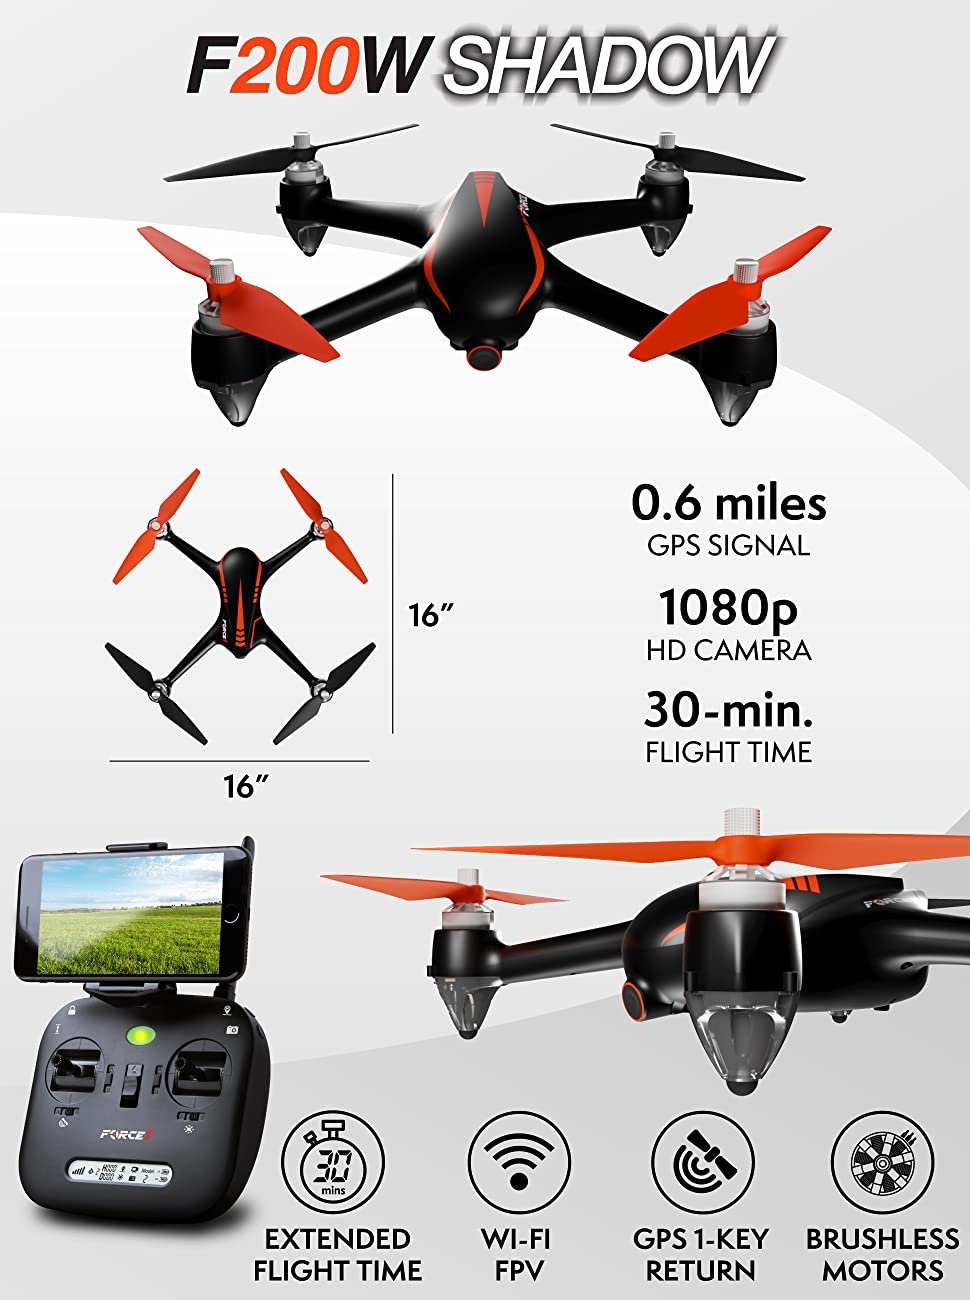 FULLY LOADED FPV DRONE KIT W CAMERA SMARTPHONE HOLDER Go Farther Faster With The MJX Bugs 2 Wi Fi Drone That Features Built In GPS And A 1080p Camera